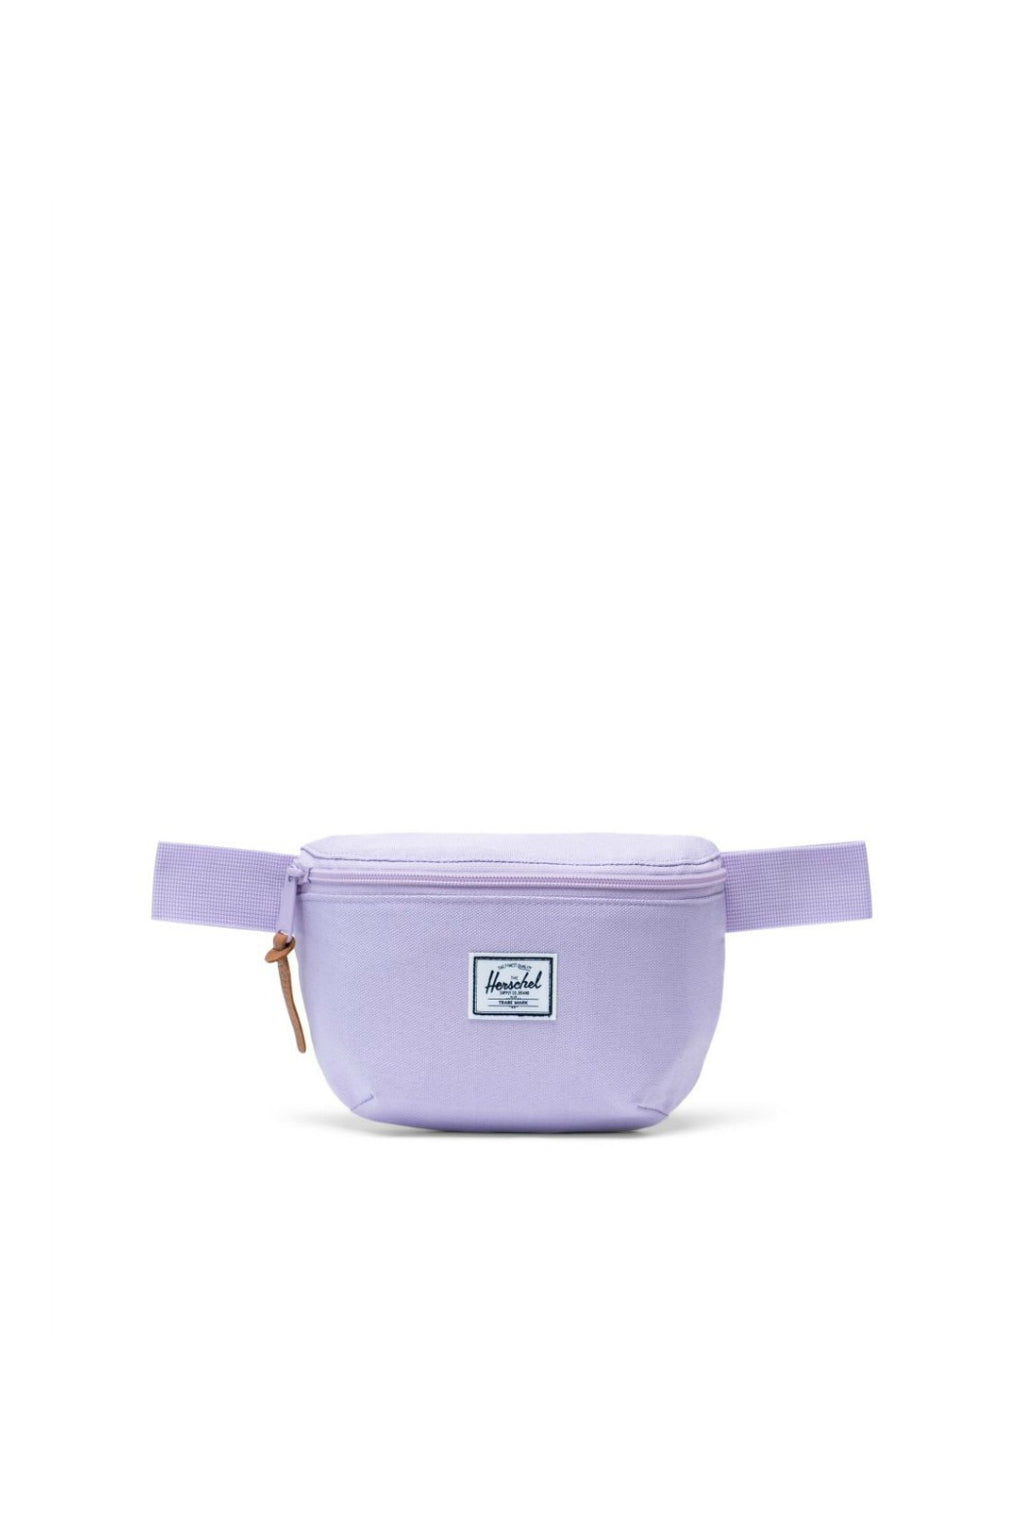 Herschel Supply Co. Fourteen Hip Pack - Lavendulax